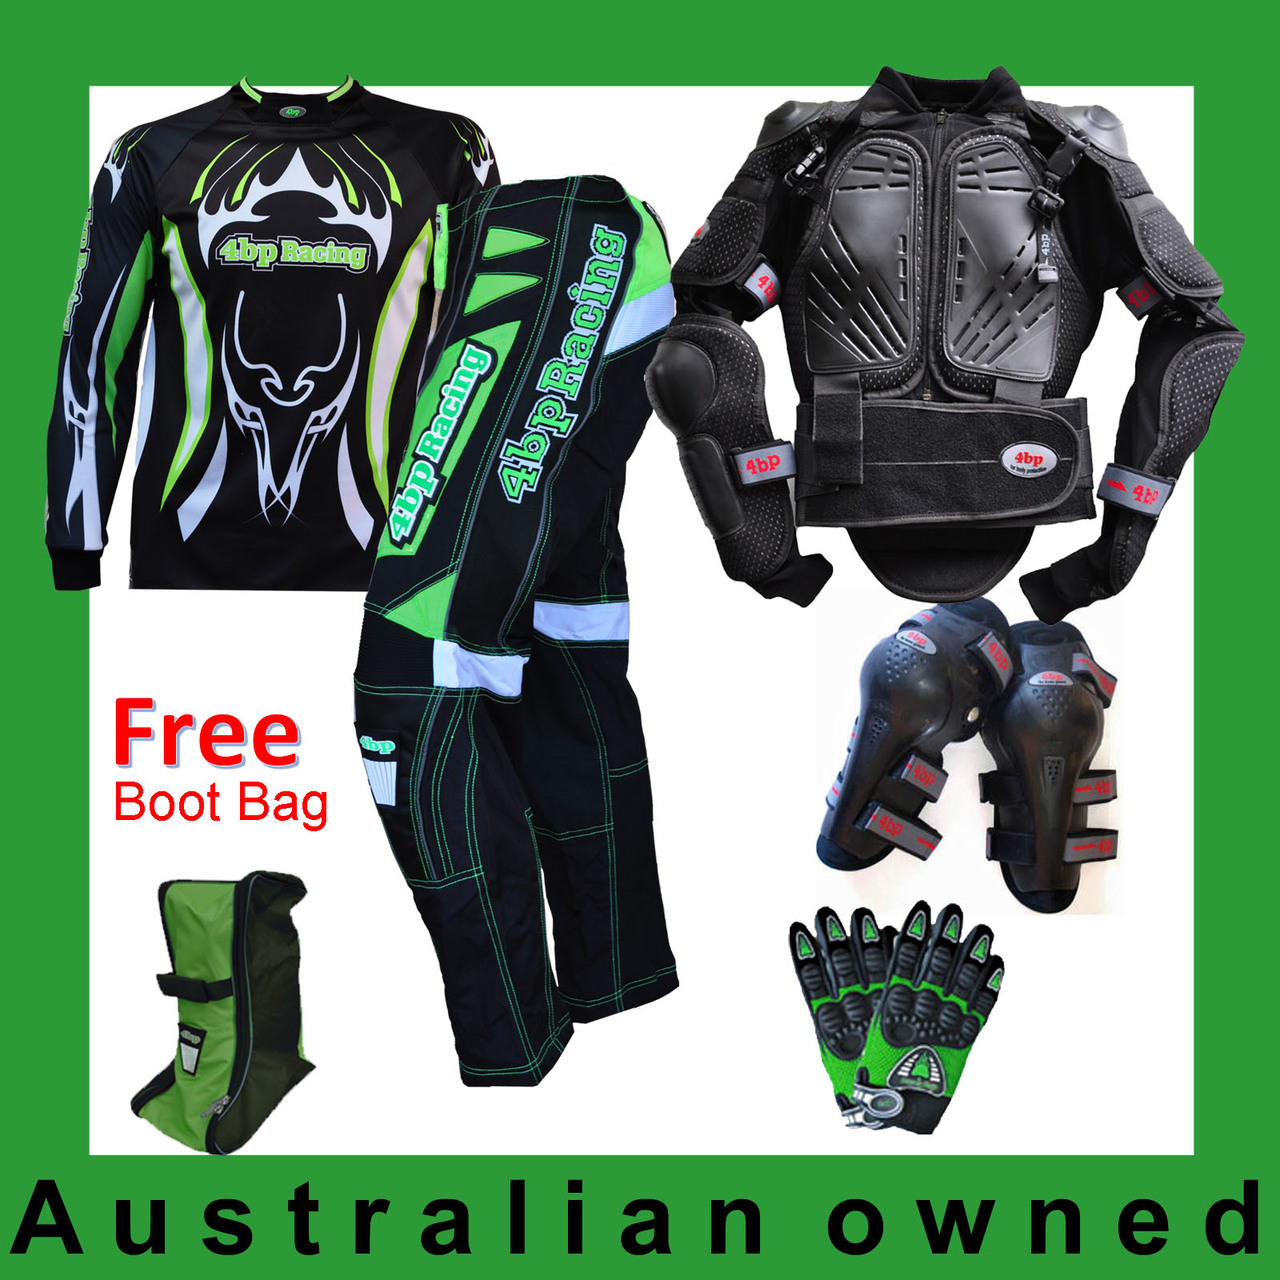 Adult Special Pack: Armour,Pants,Jersey,Gloves,Knee + Free Bootbag